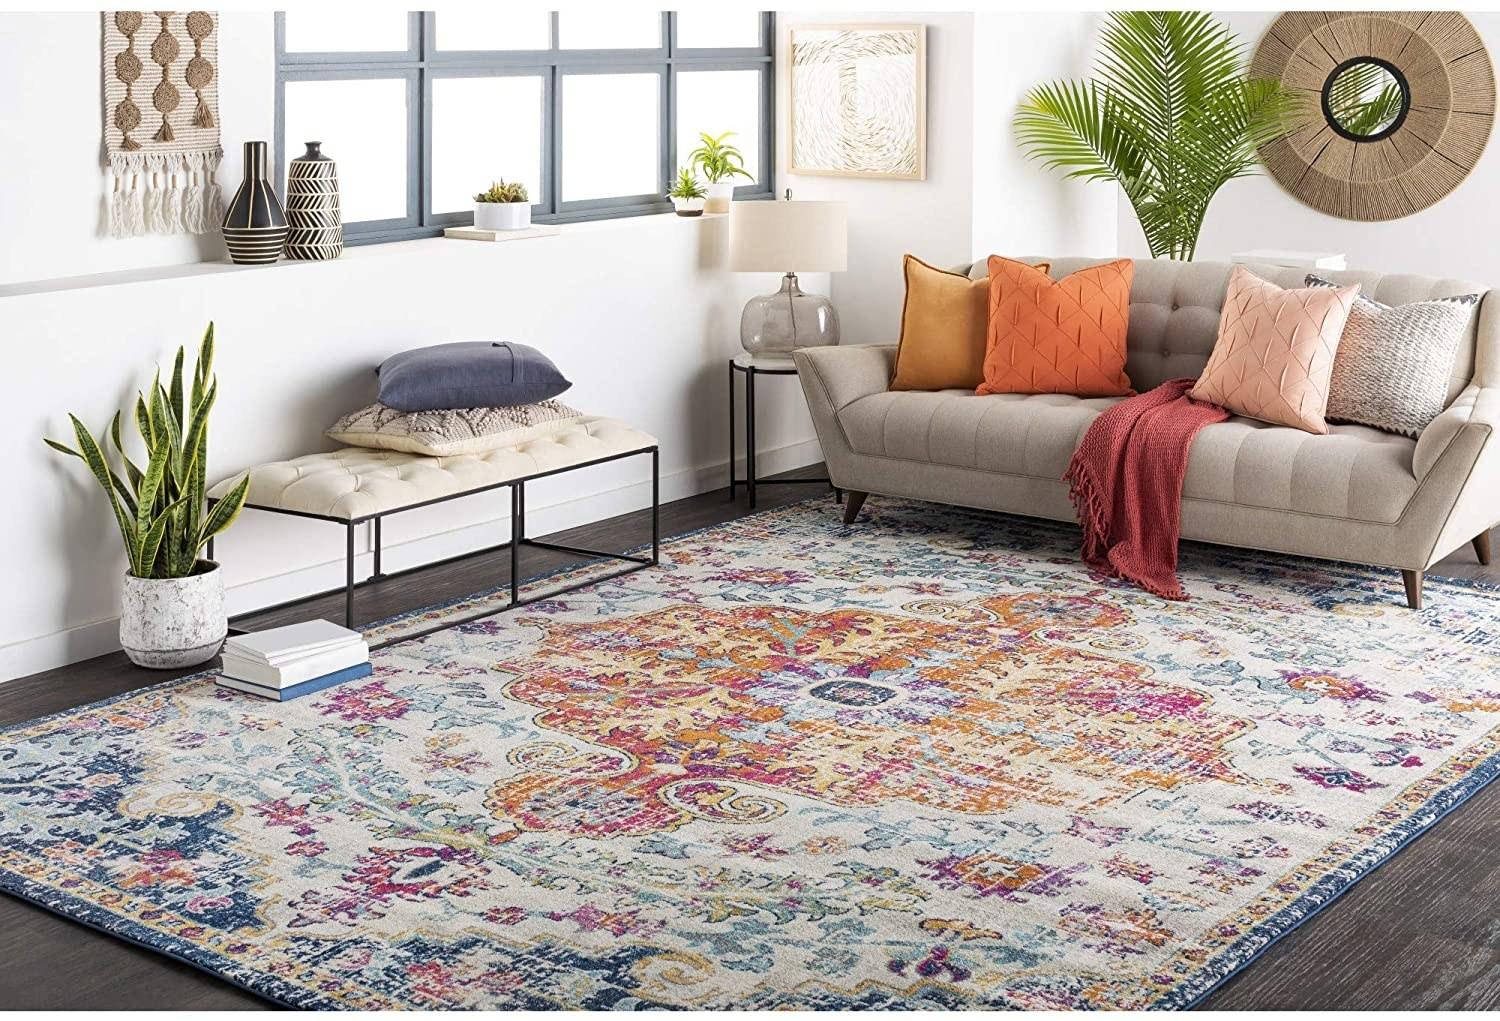 The orange/navy rug